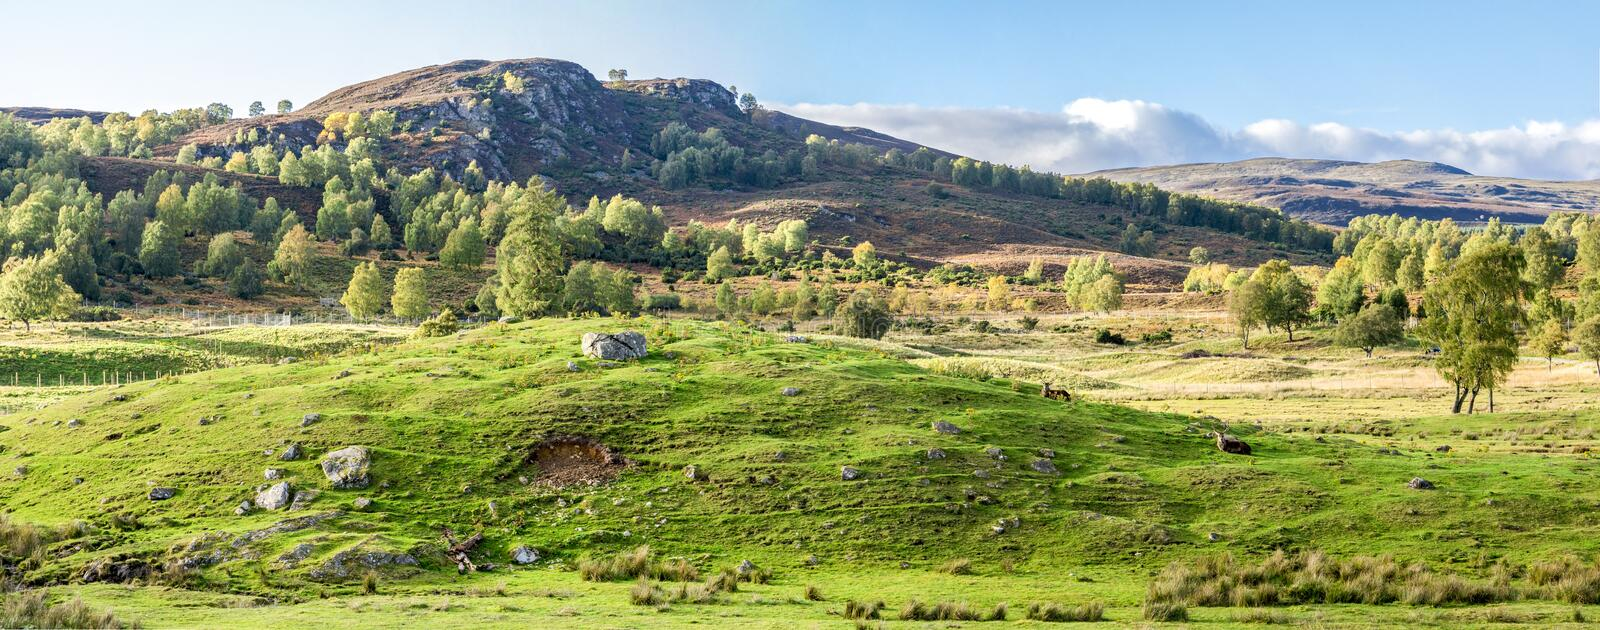 Panorama of Scottish Highlands outdoors and red deers lying down on ground, Scotland stock photos